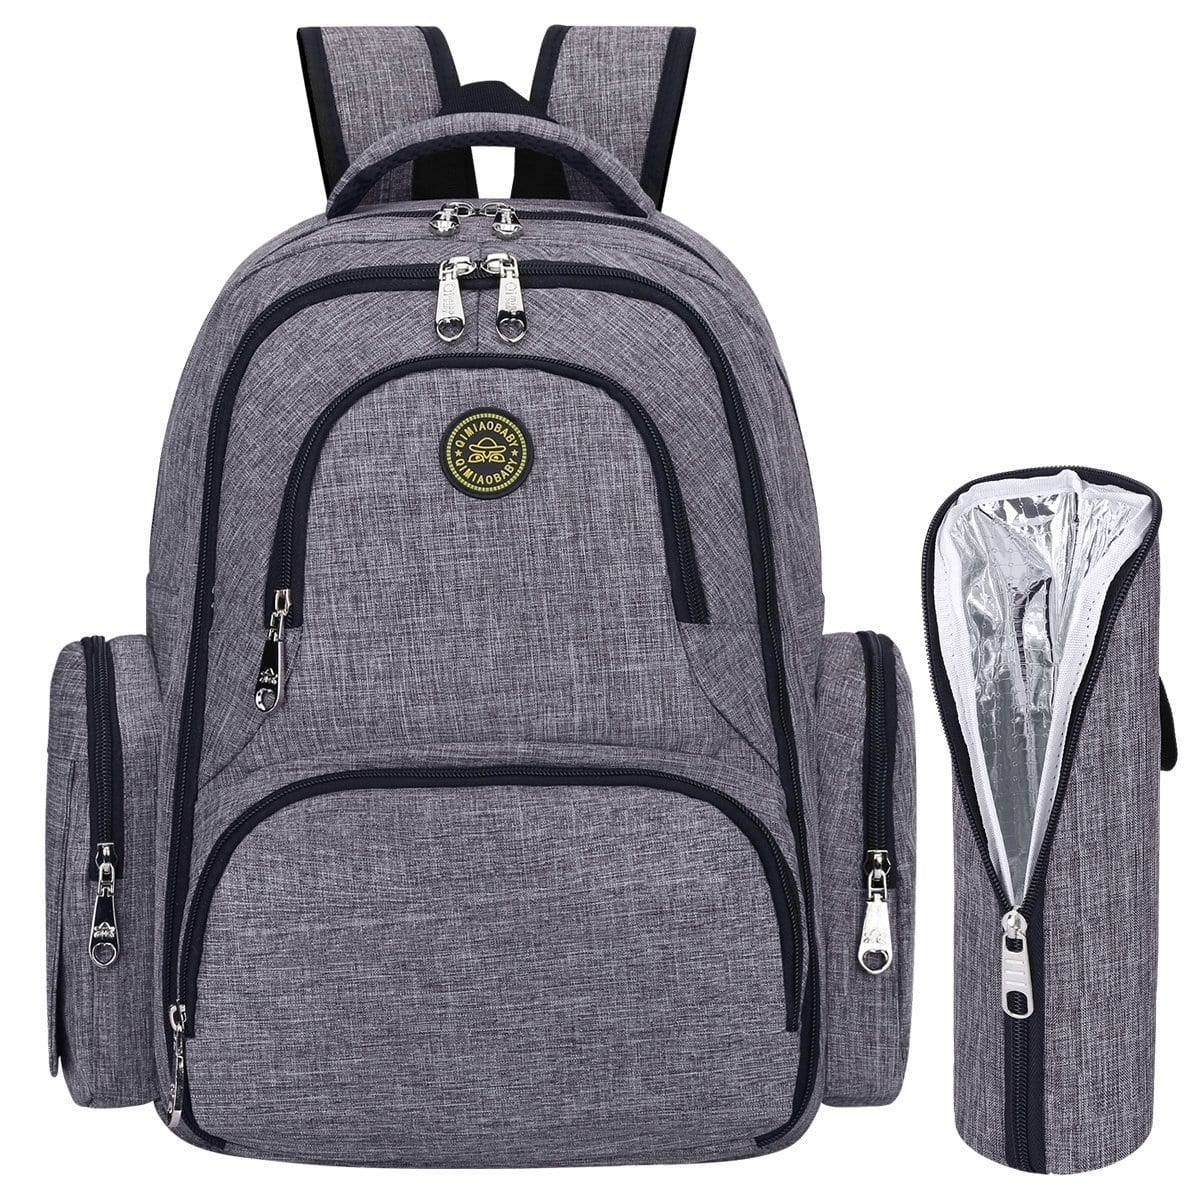 Water-resistant Baby Diaper Bag Smart Organizer Backpack $24.78 @amazon